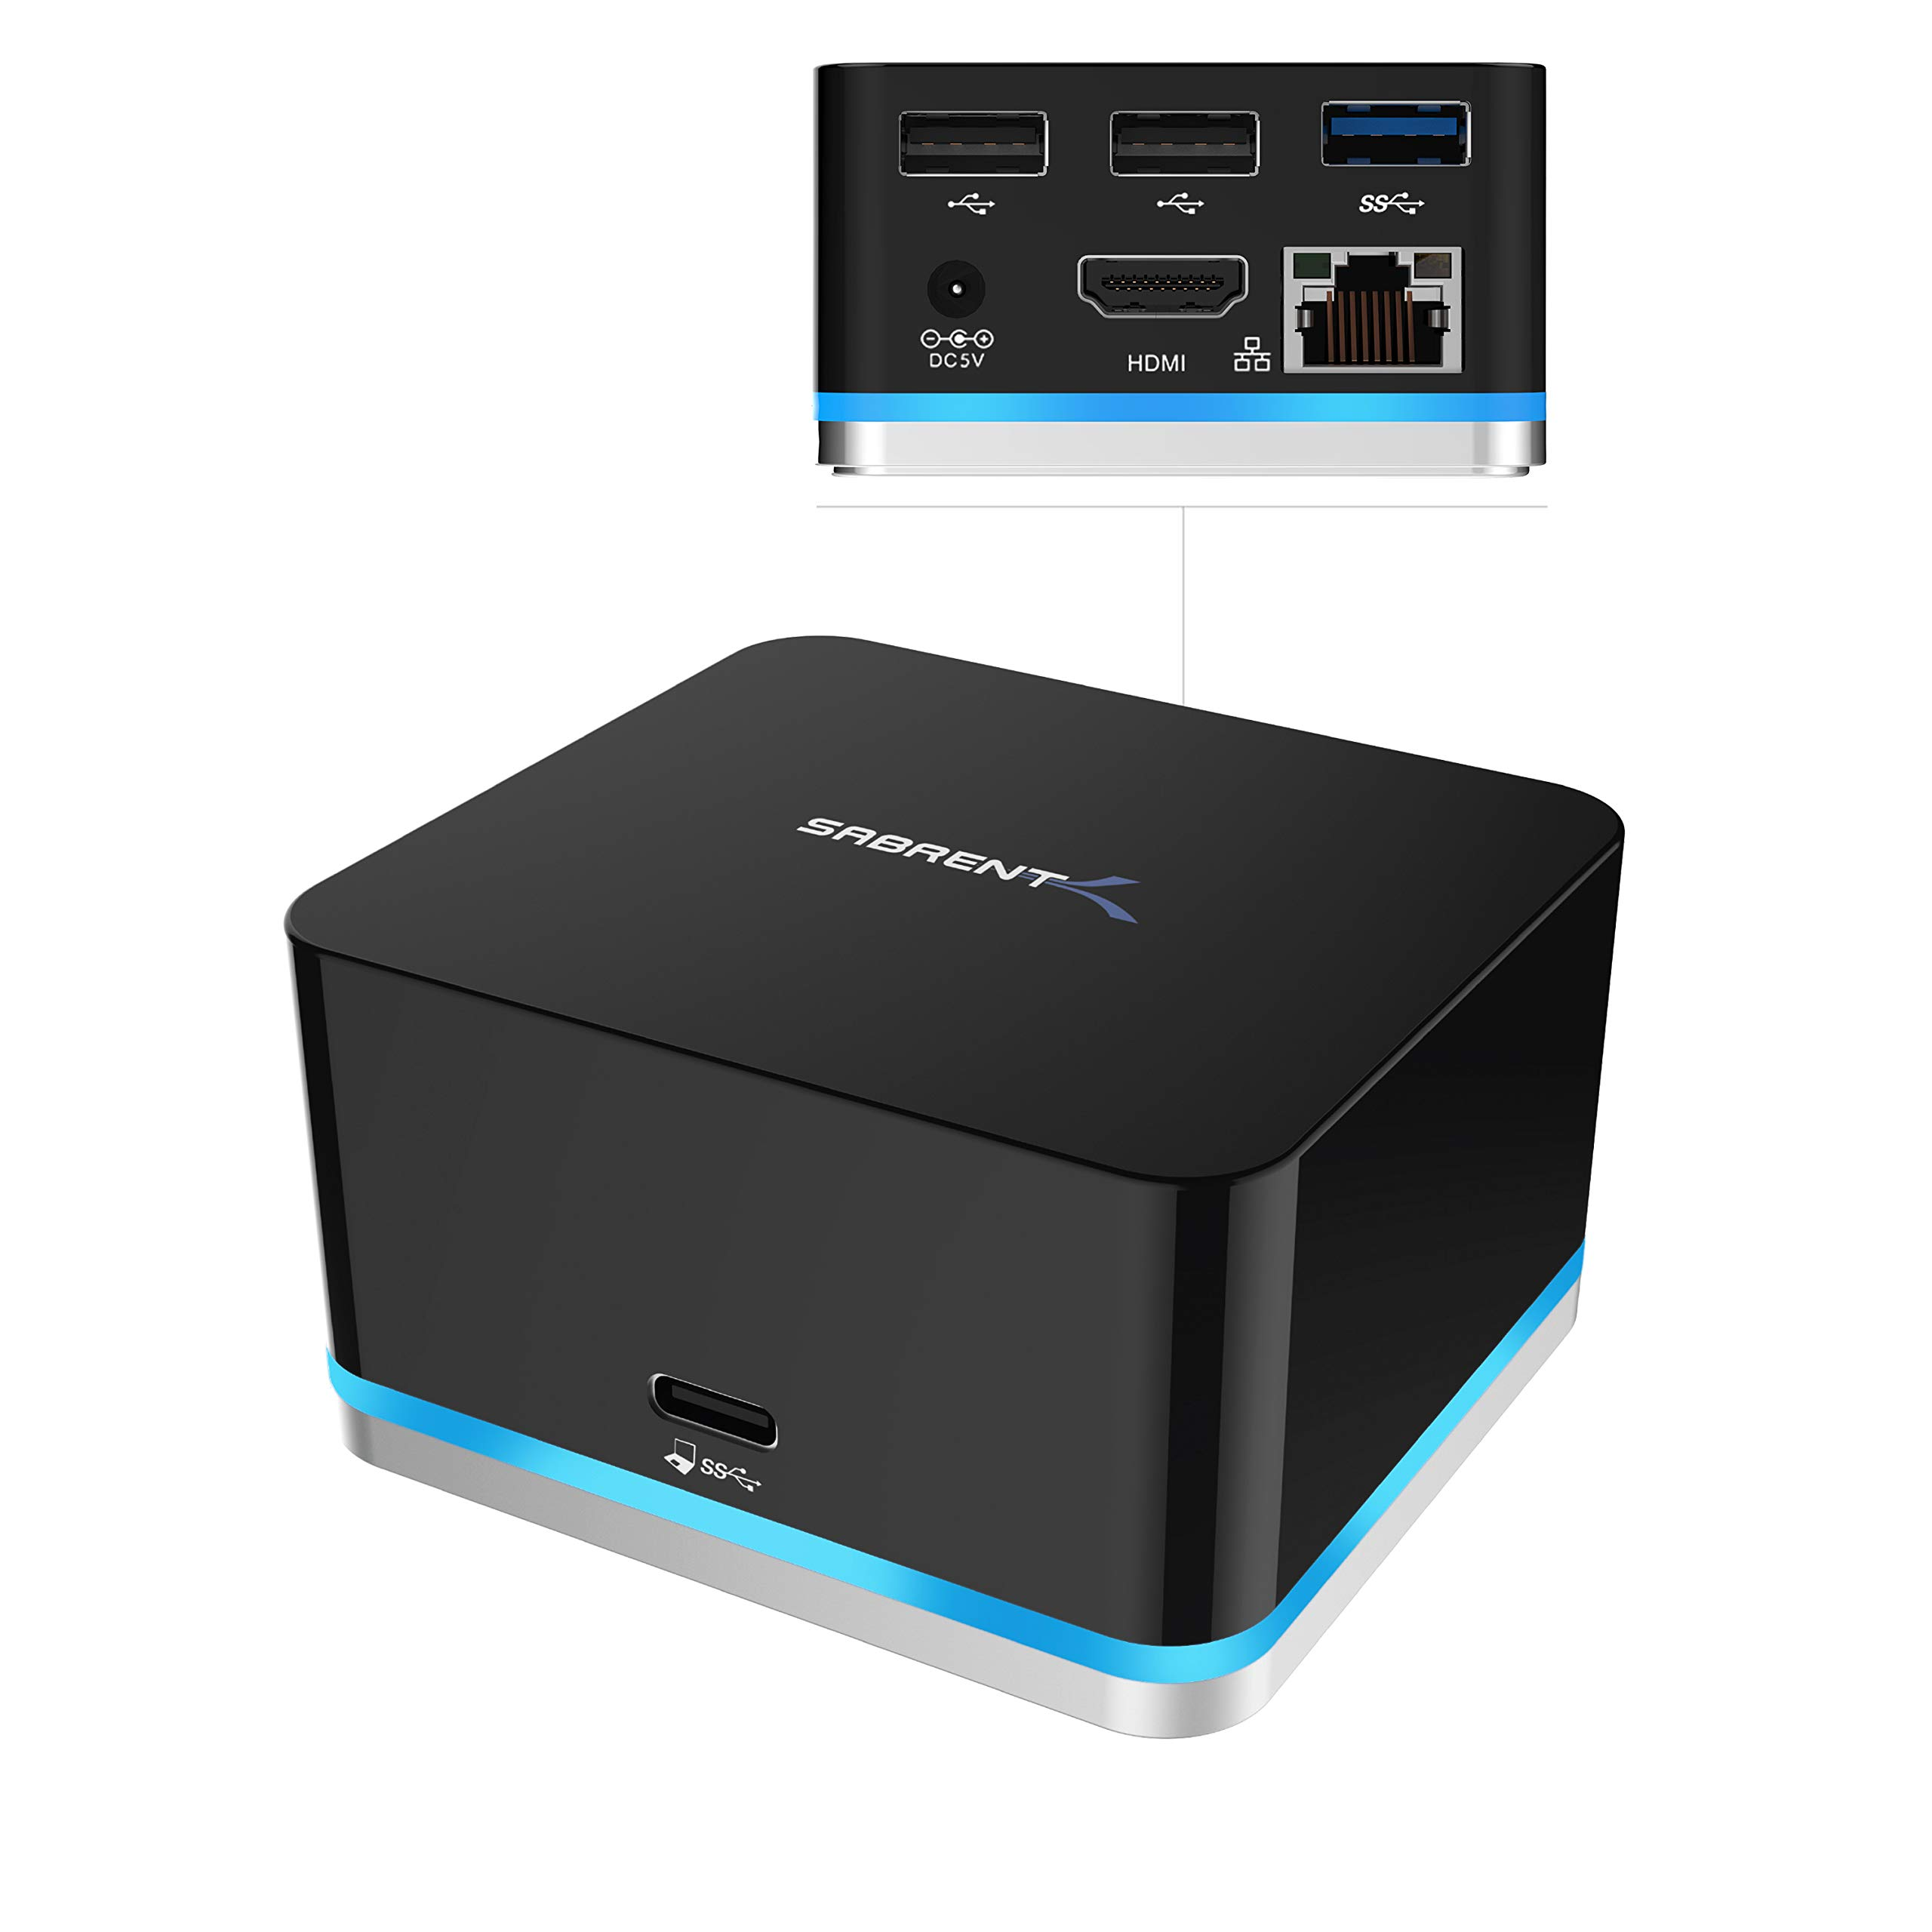 Sabrent 5 Port USB Type C Mini Continuum Docking Station, Supports Up To 3840x2160 at 30HZ (DS-CMND)